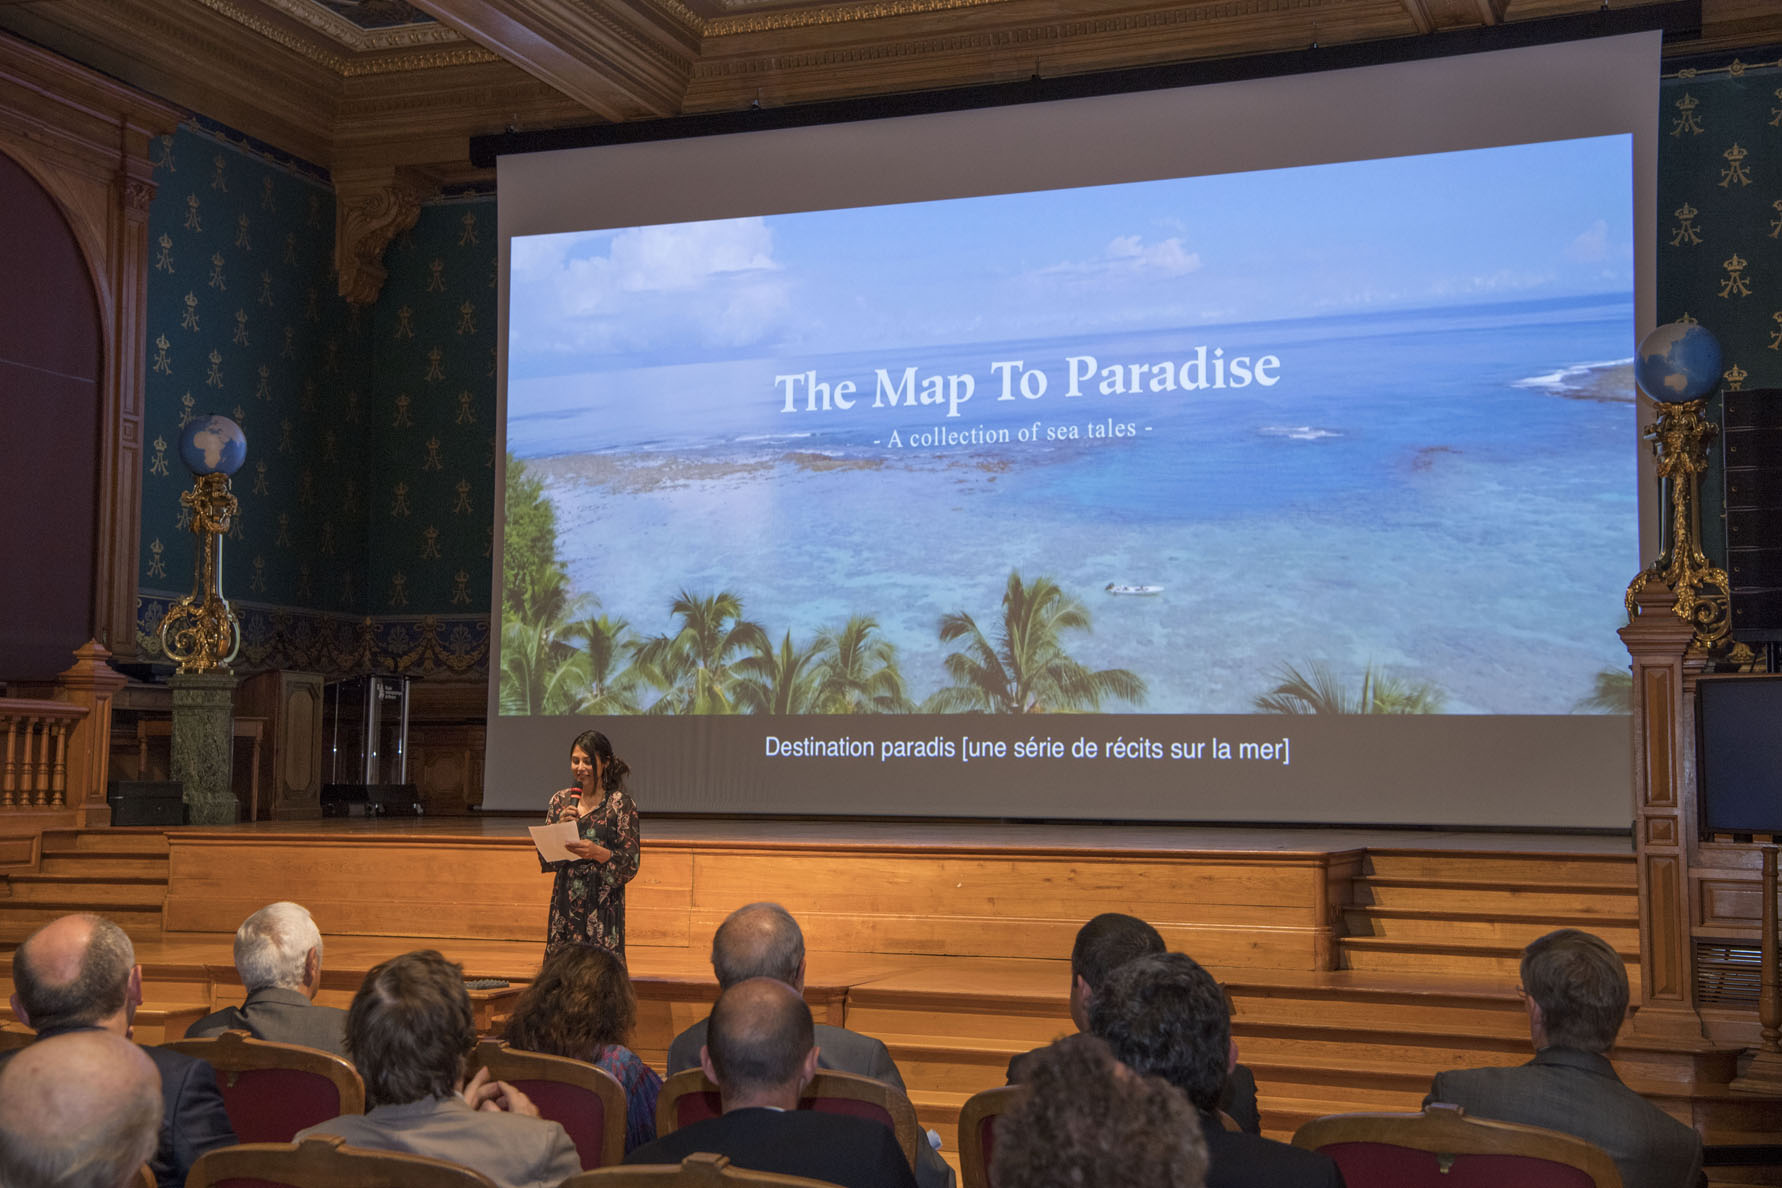 LOW-15_Projection-The-Map-to-paradise_20180608_M_Dagnino.jpg